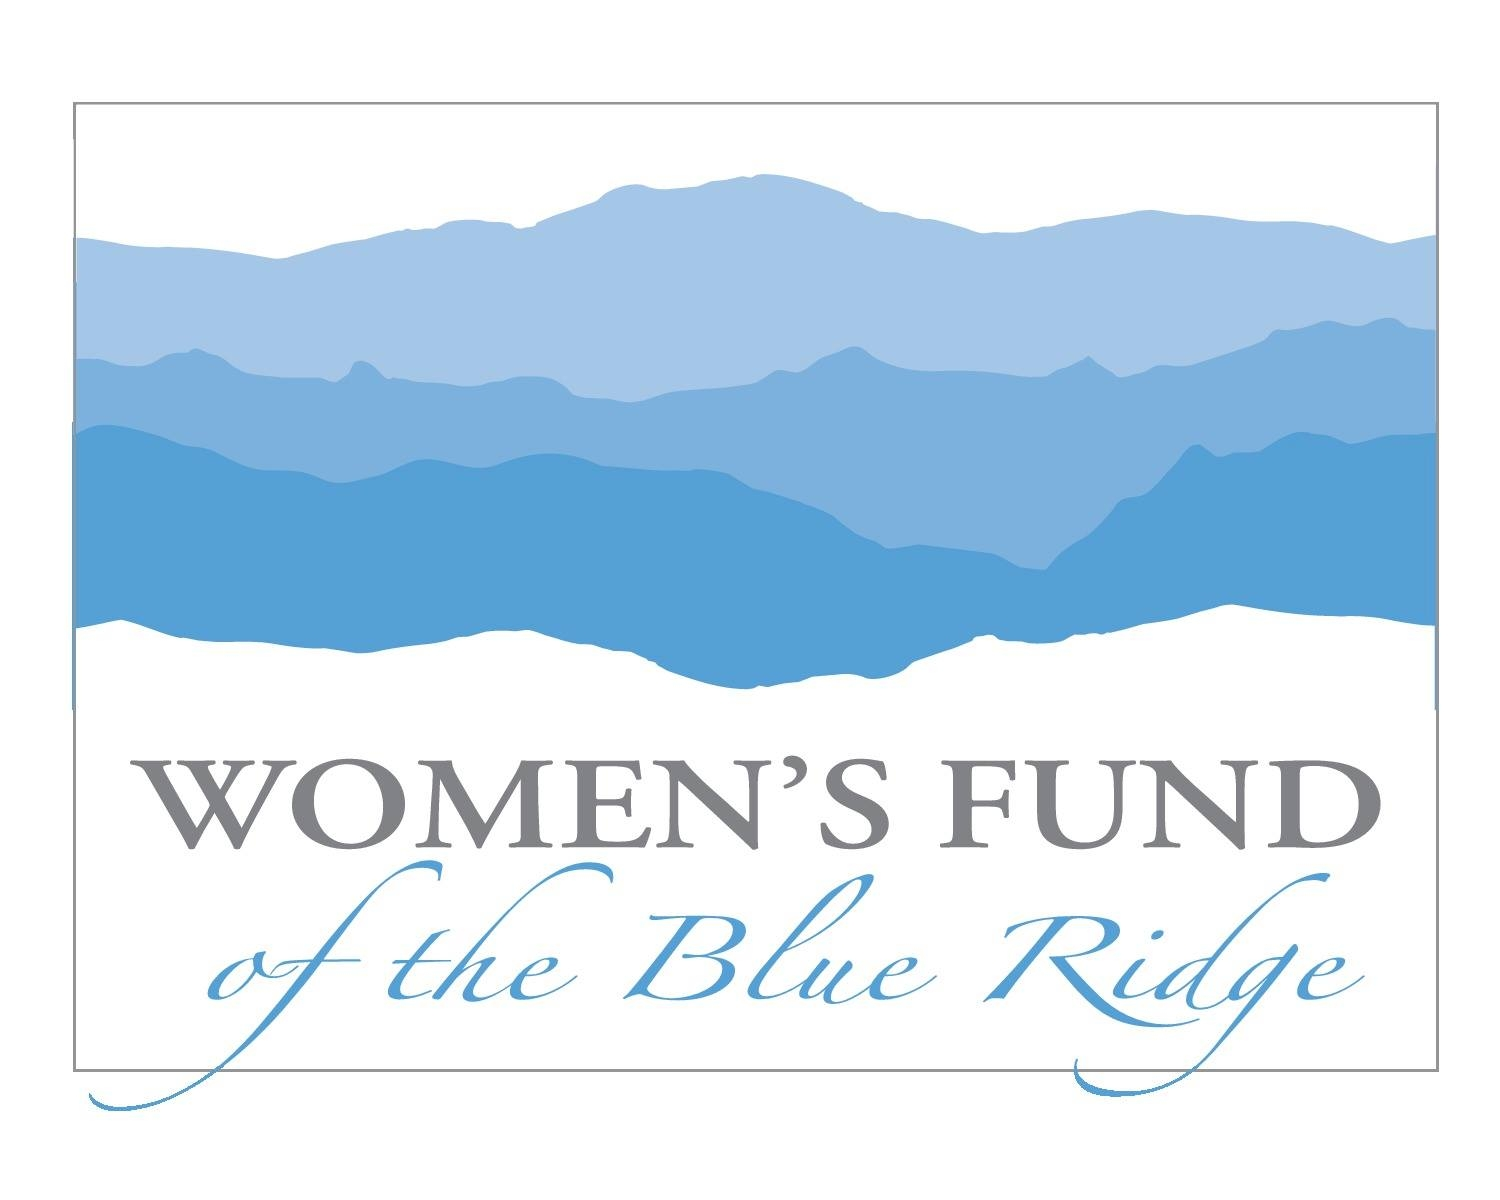 Women's Fund of the Blue Ridge logo